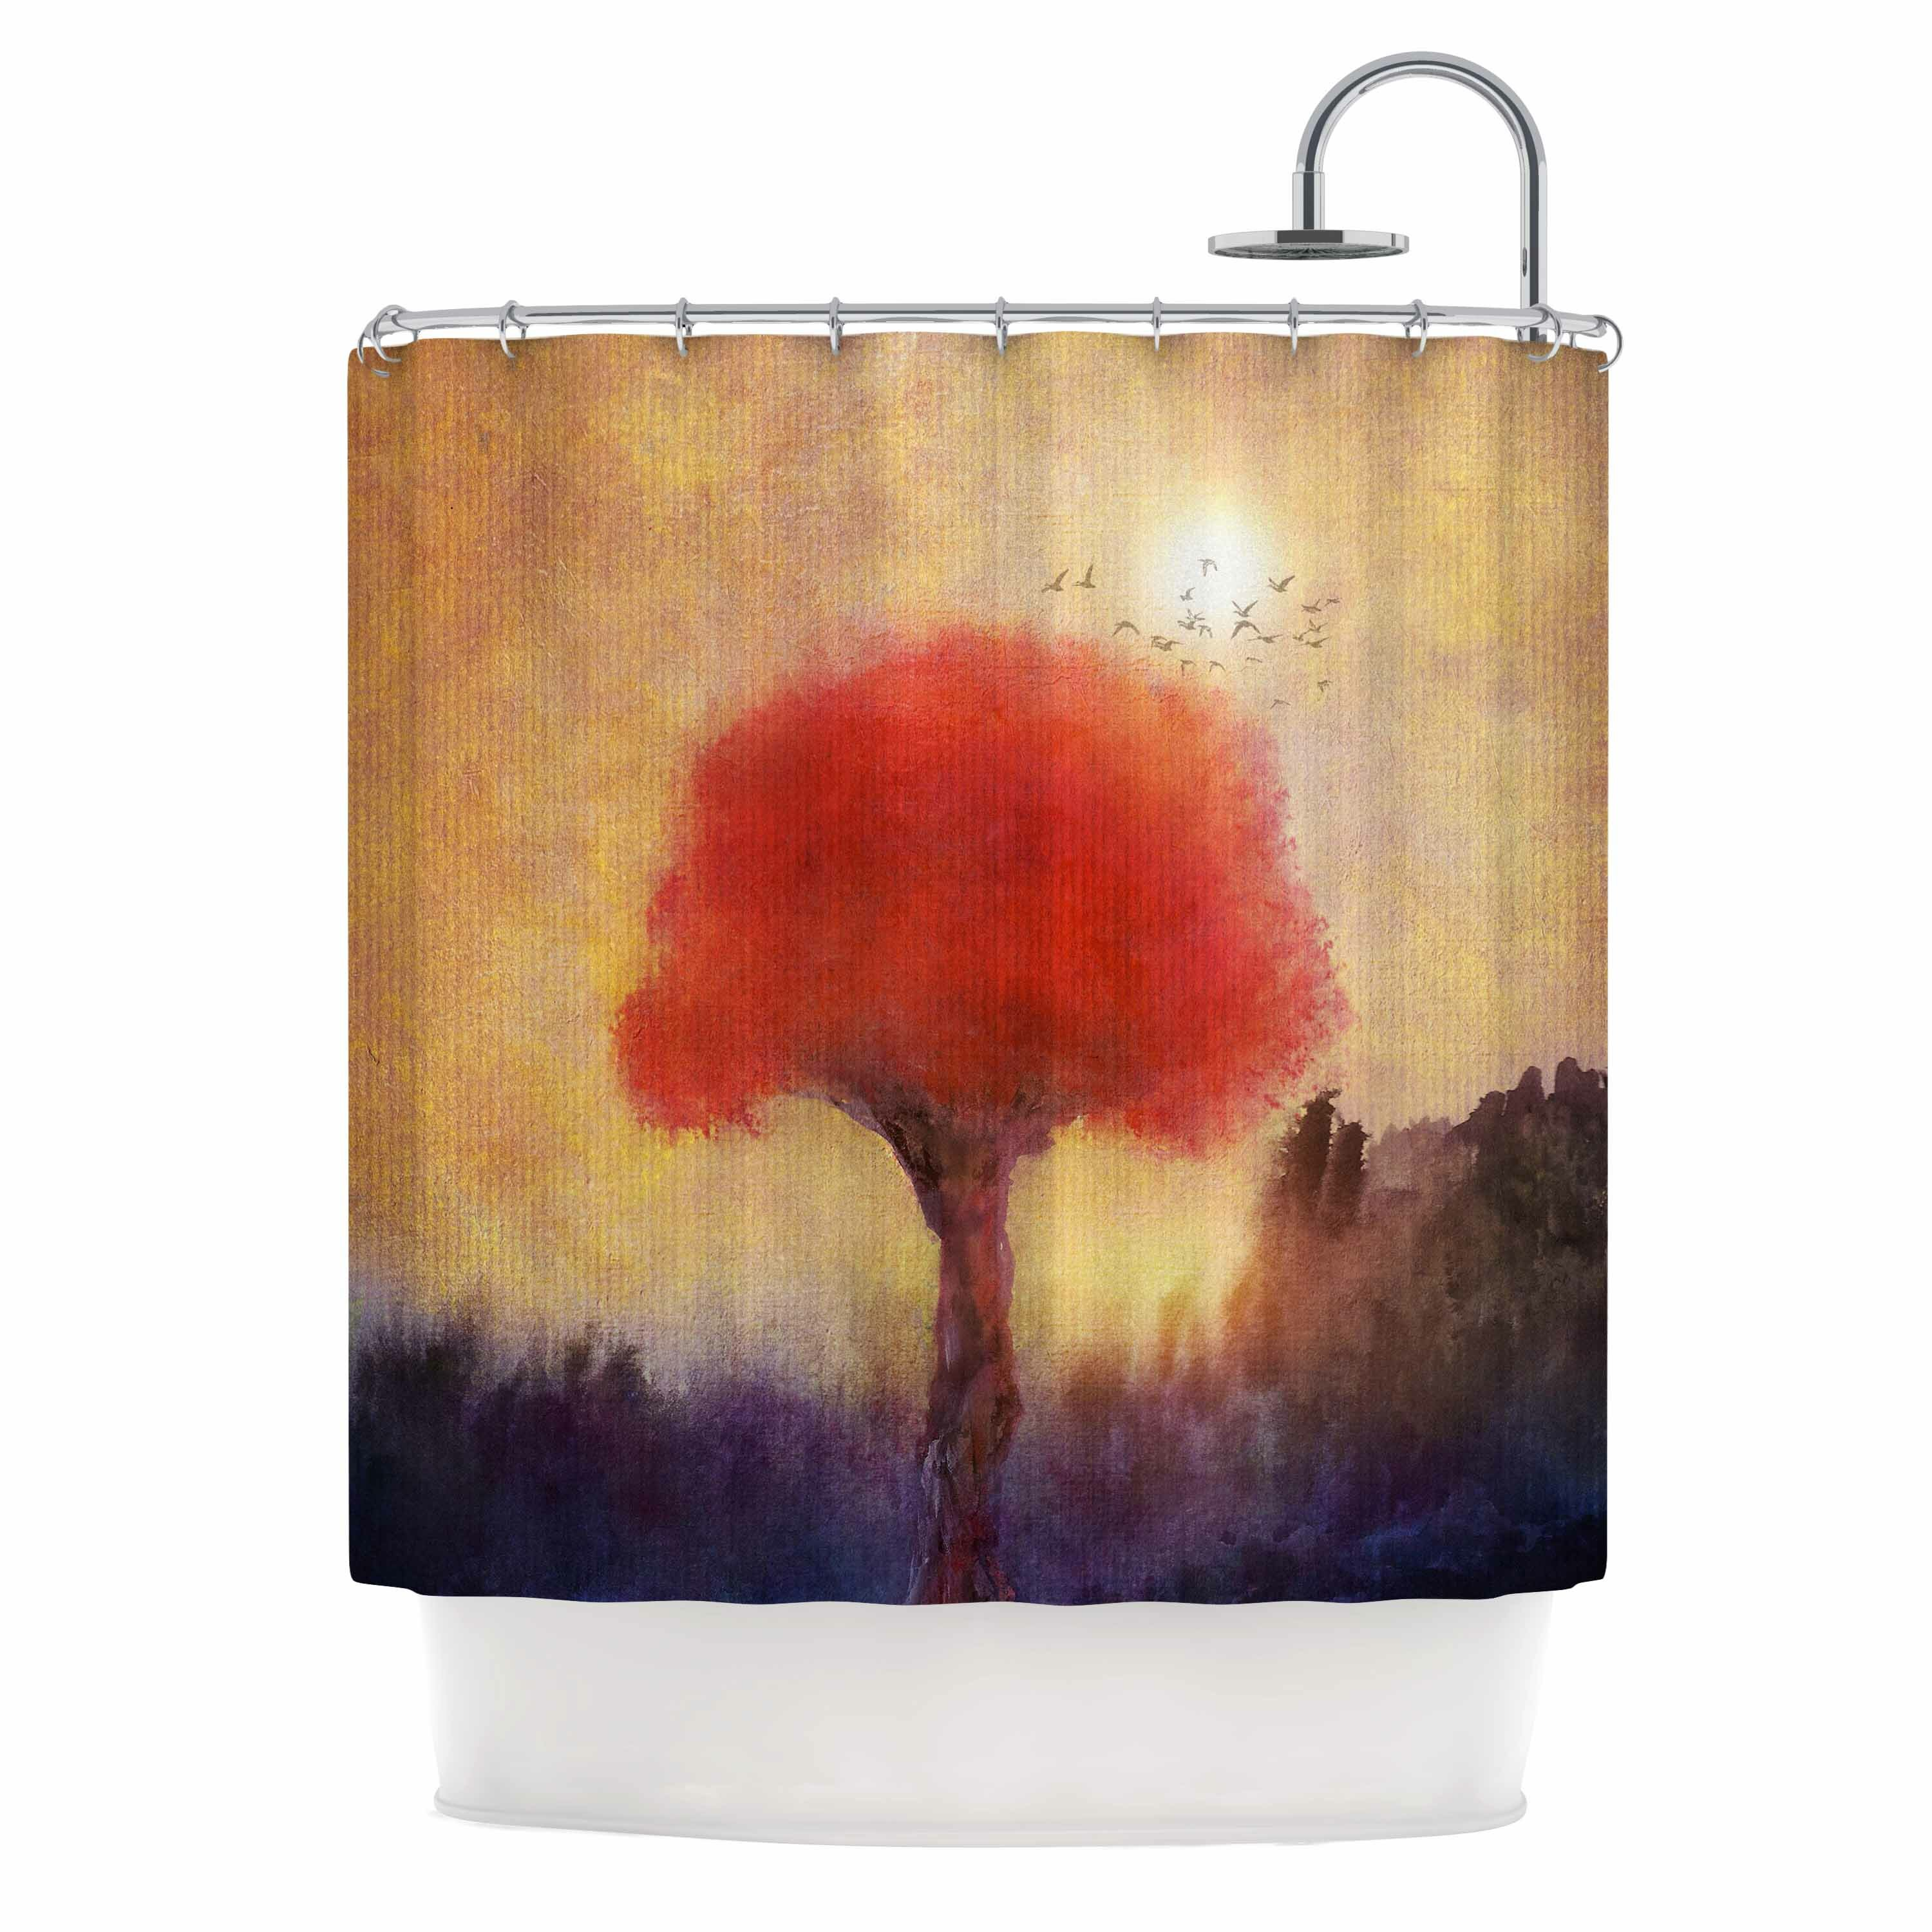 East Urban Home Red Tree Shower Curtain